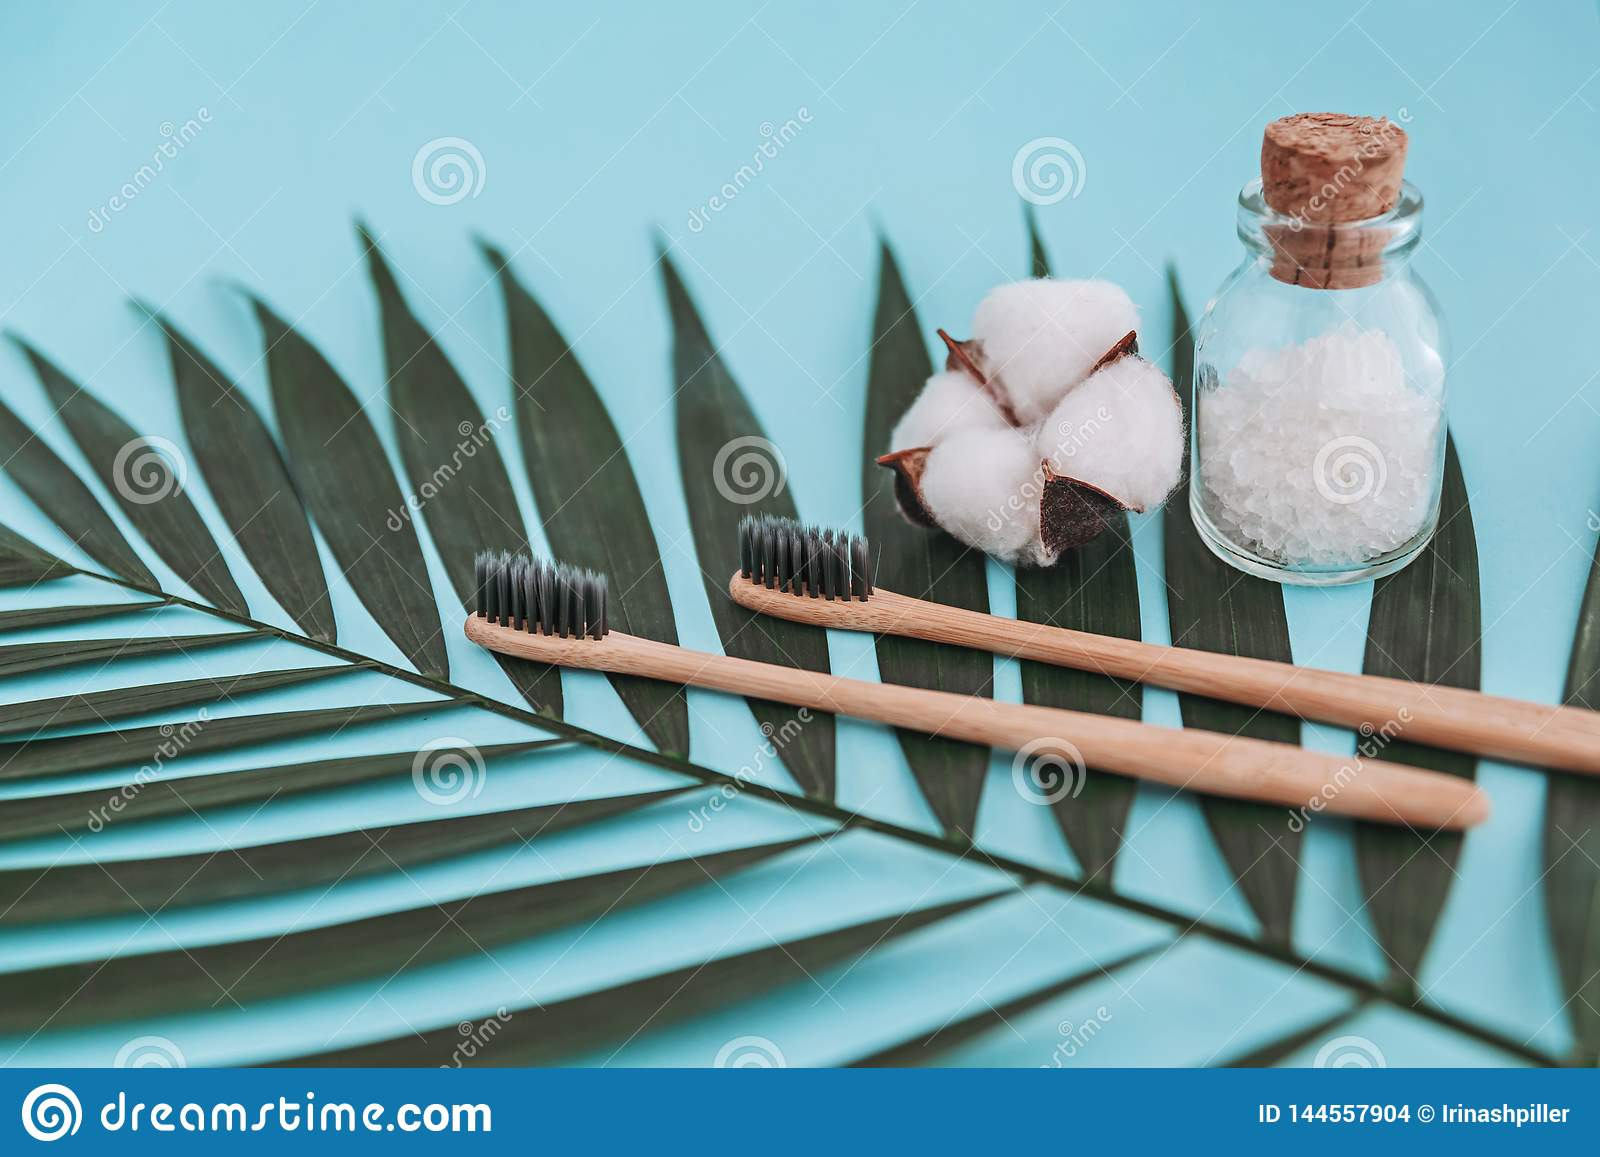 Bamboo toothbrushes, glass bottle with sea salt, cotton flower on palm leaf on blue background. Zero waste concept